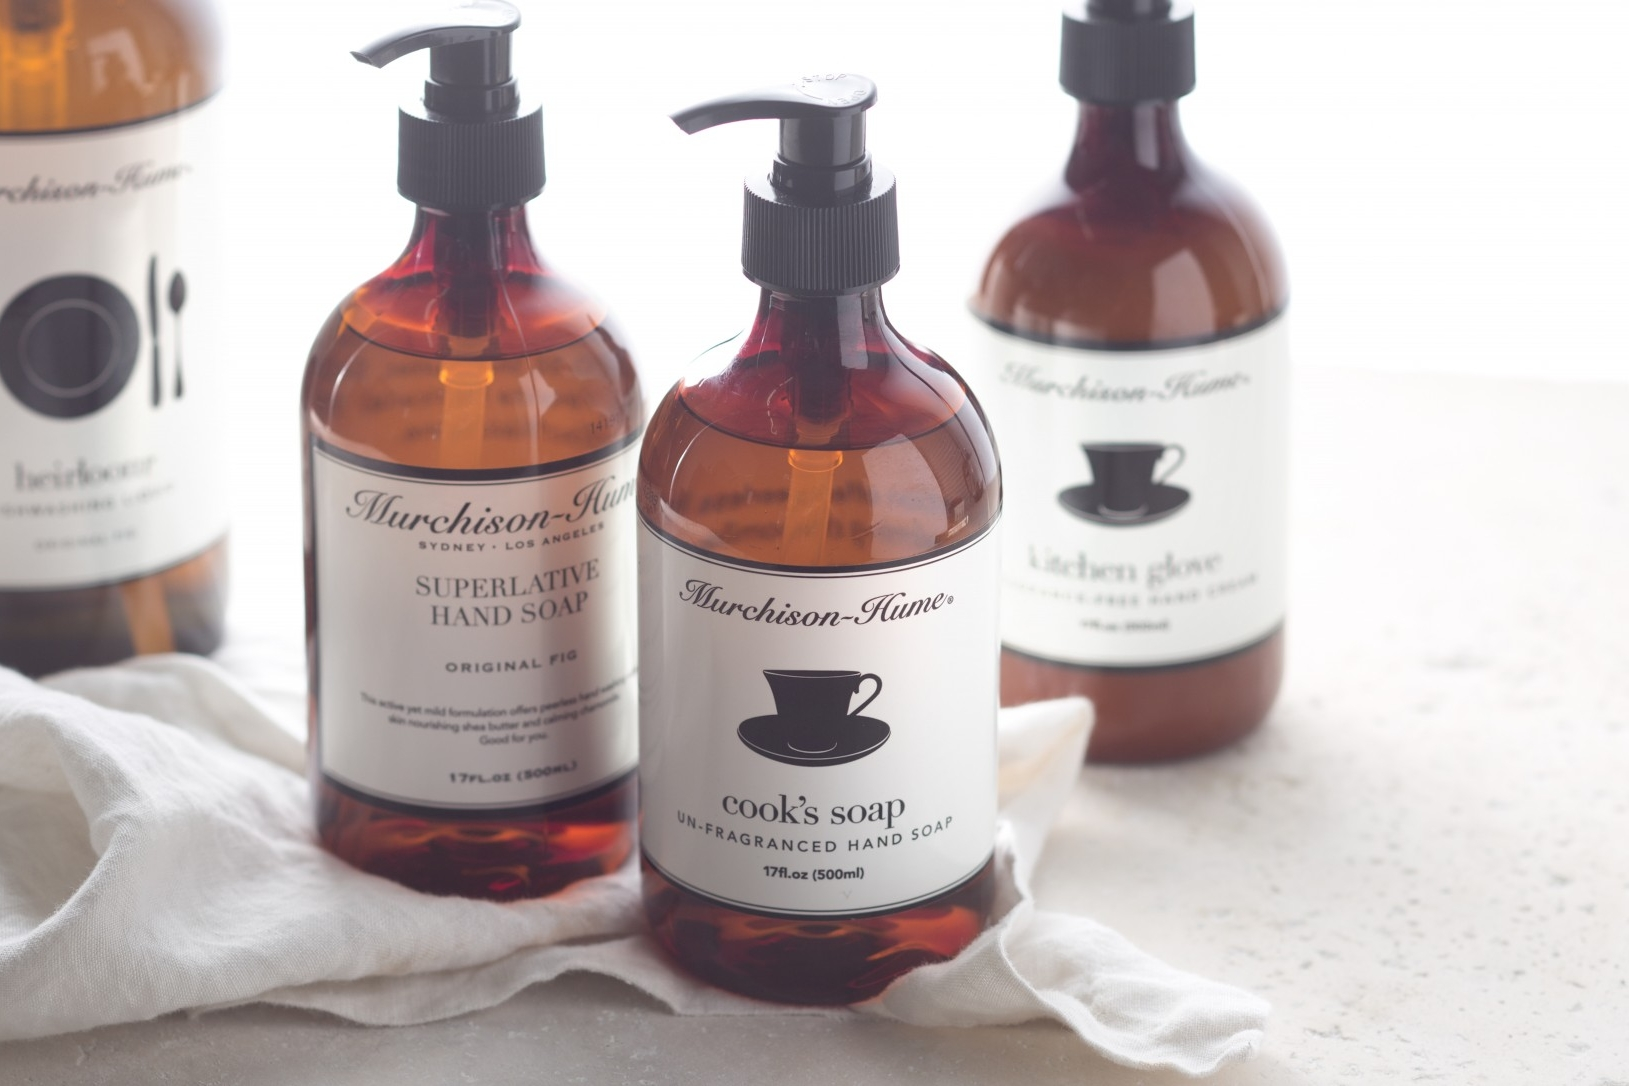 Murchison Hume - Not only do these all-natural cleaning products do the job, but the packaging is super stylish. I have their hand soap in all my bathrooms!